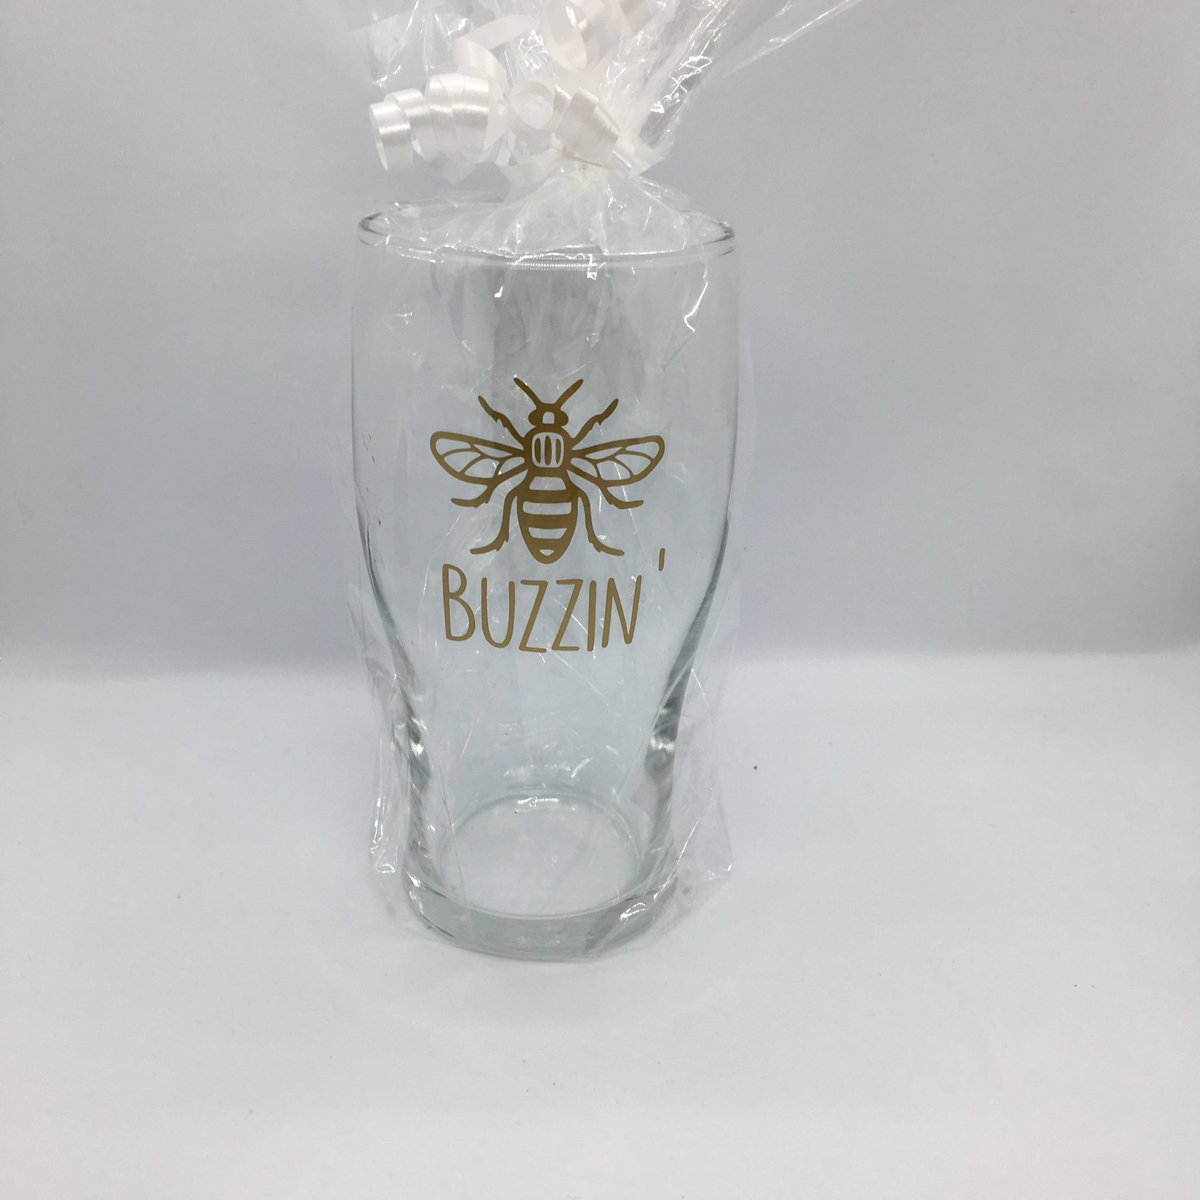 It's no surprise we love the  over here at beecreative    They make a great gift- or just because #UKGiftAM  #ukgifthour #handmadebyme #etsyshop #etsyfinds #handmadeuk  https://www.etsy.com/uk/listing/743665728/manchester-bee-pint-glass?ref=shop_home_active_5 …pic.twitter.com/x1ETez2mOS